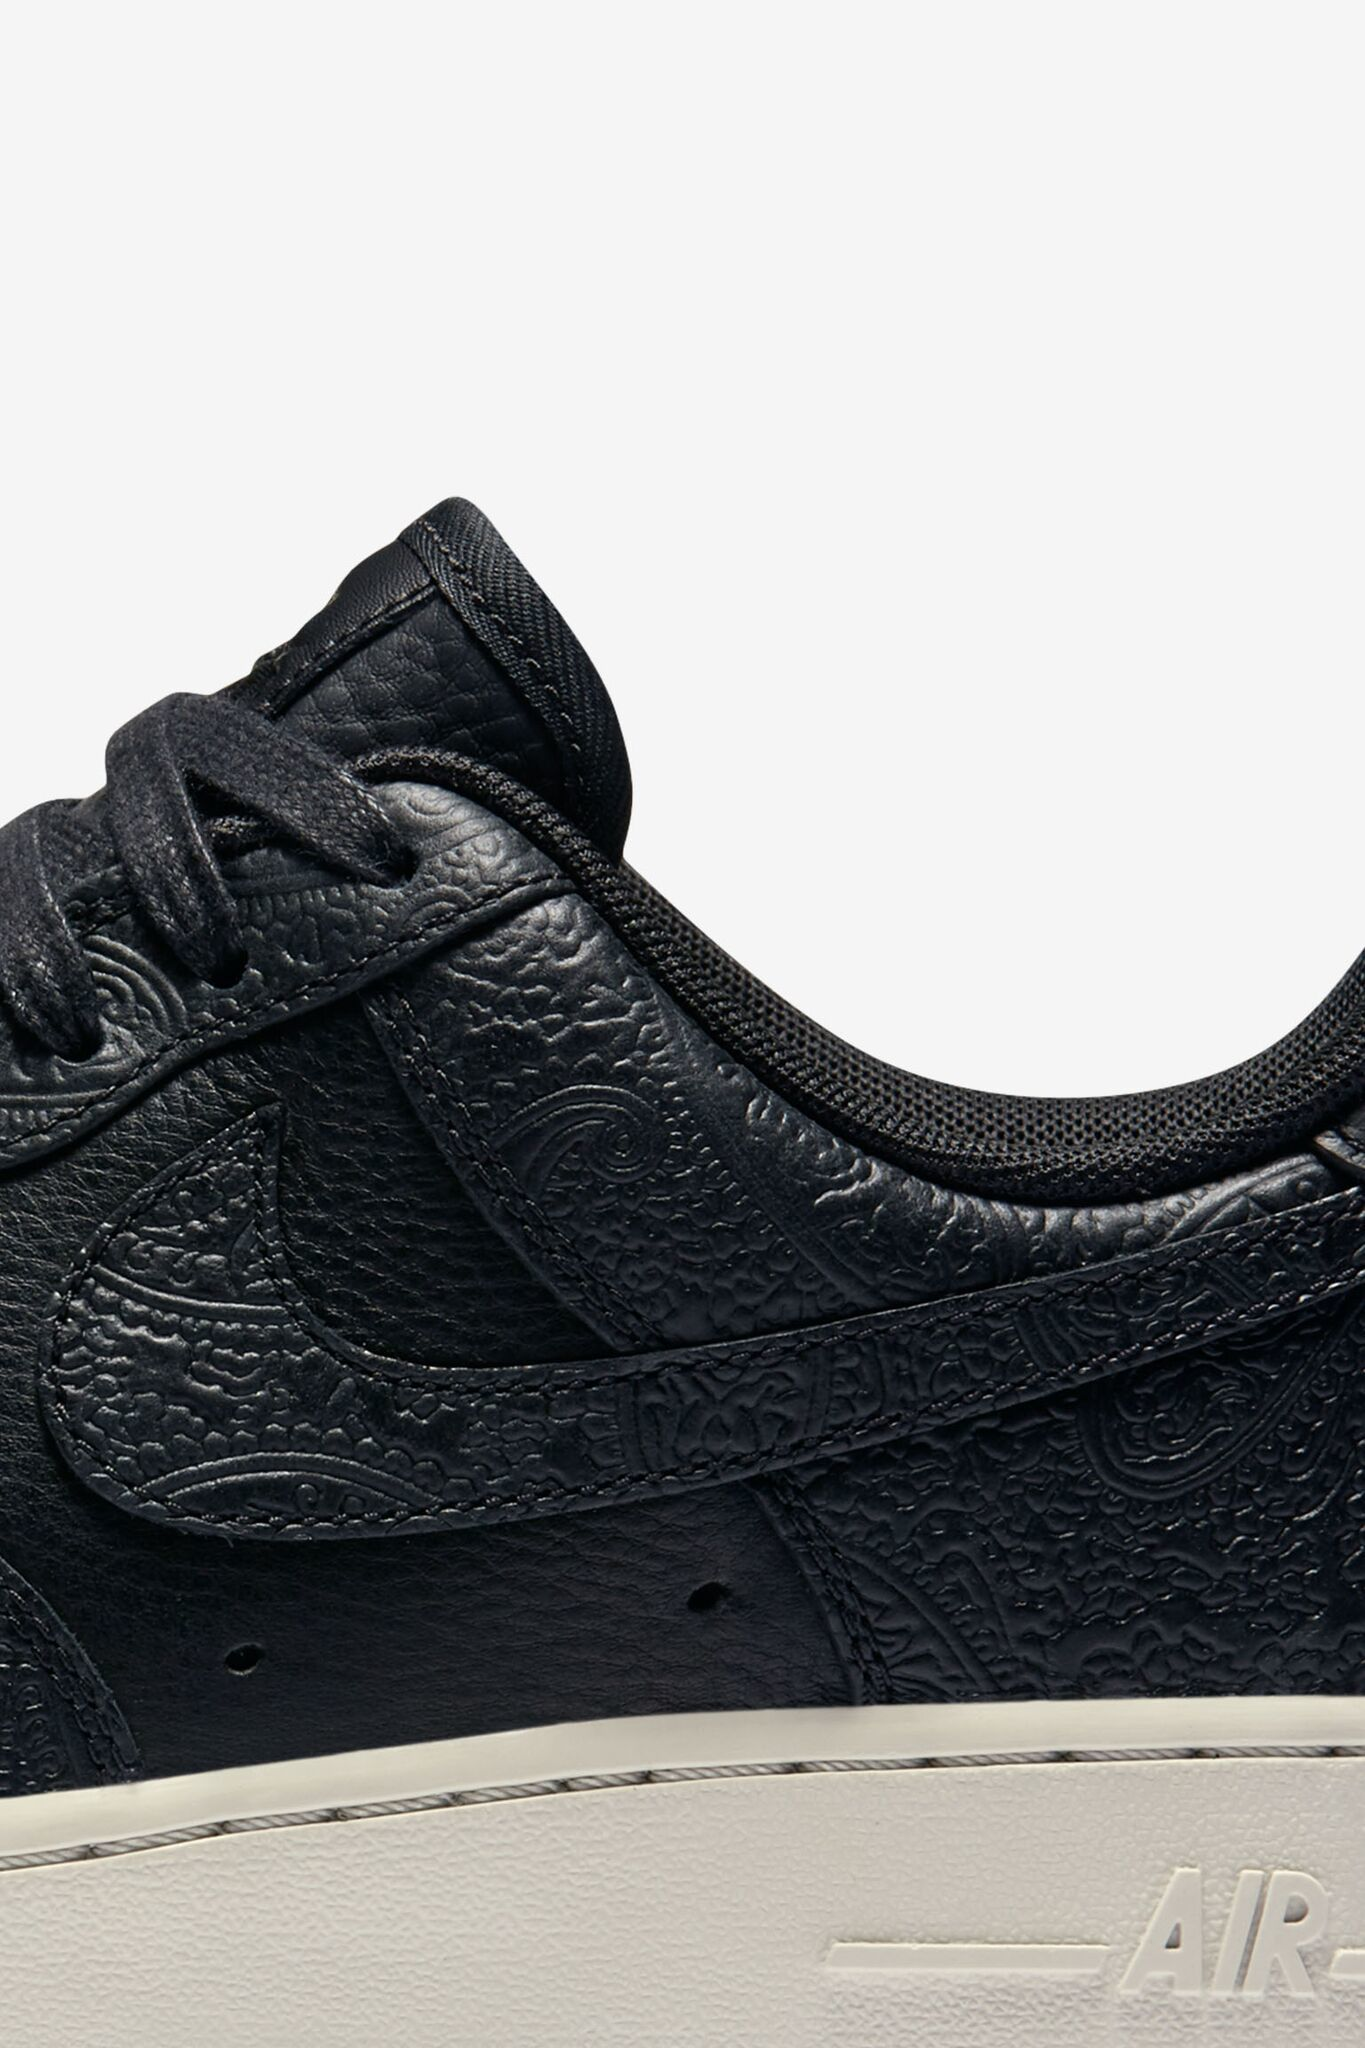 Women's Nike Air Force 1 'Black & Premium Paisley'.